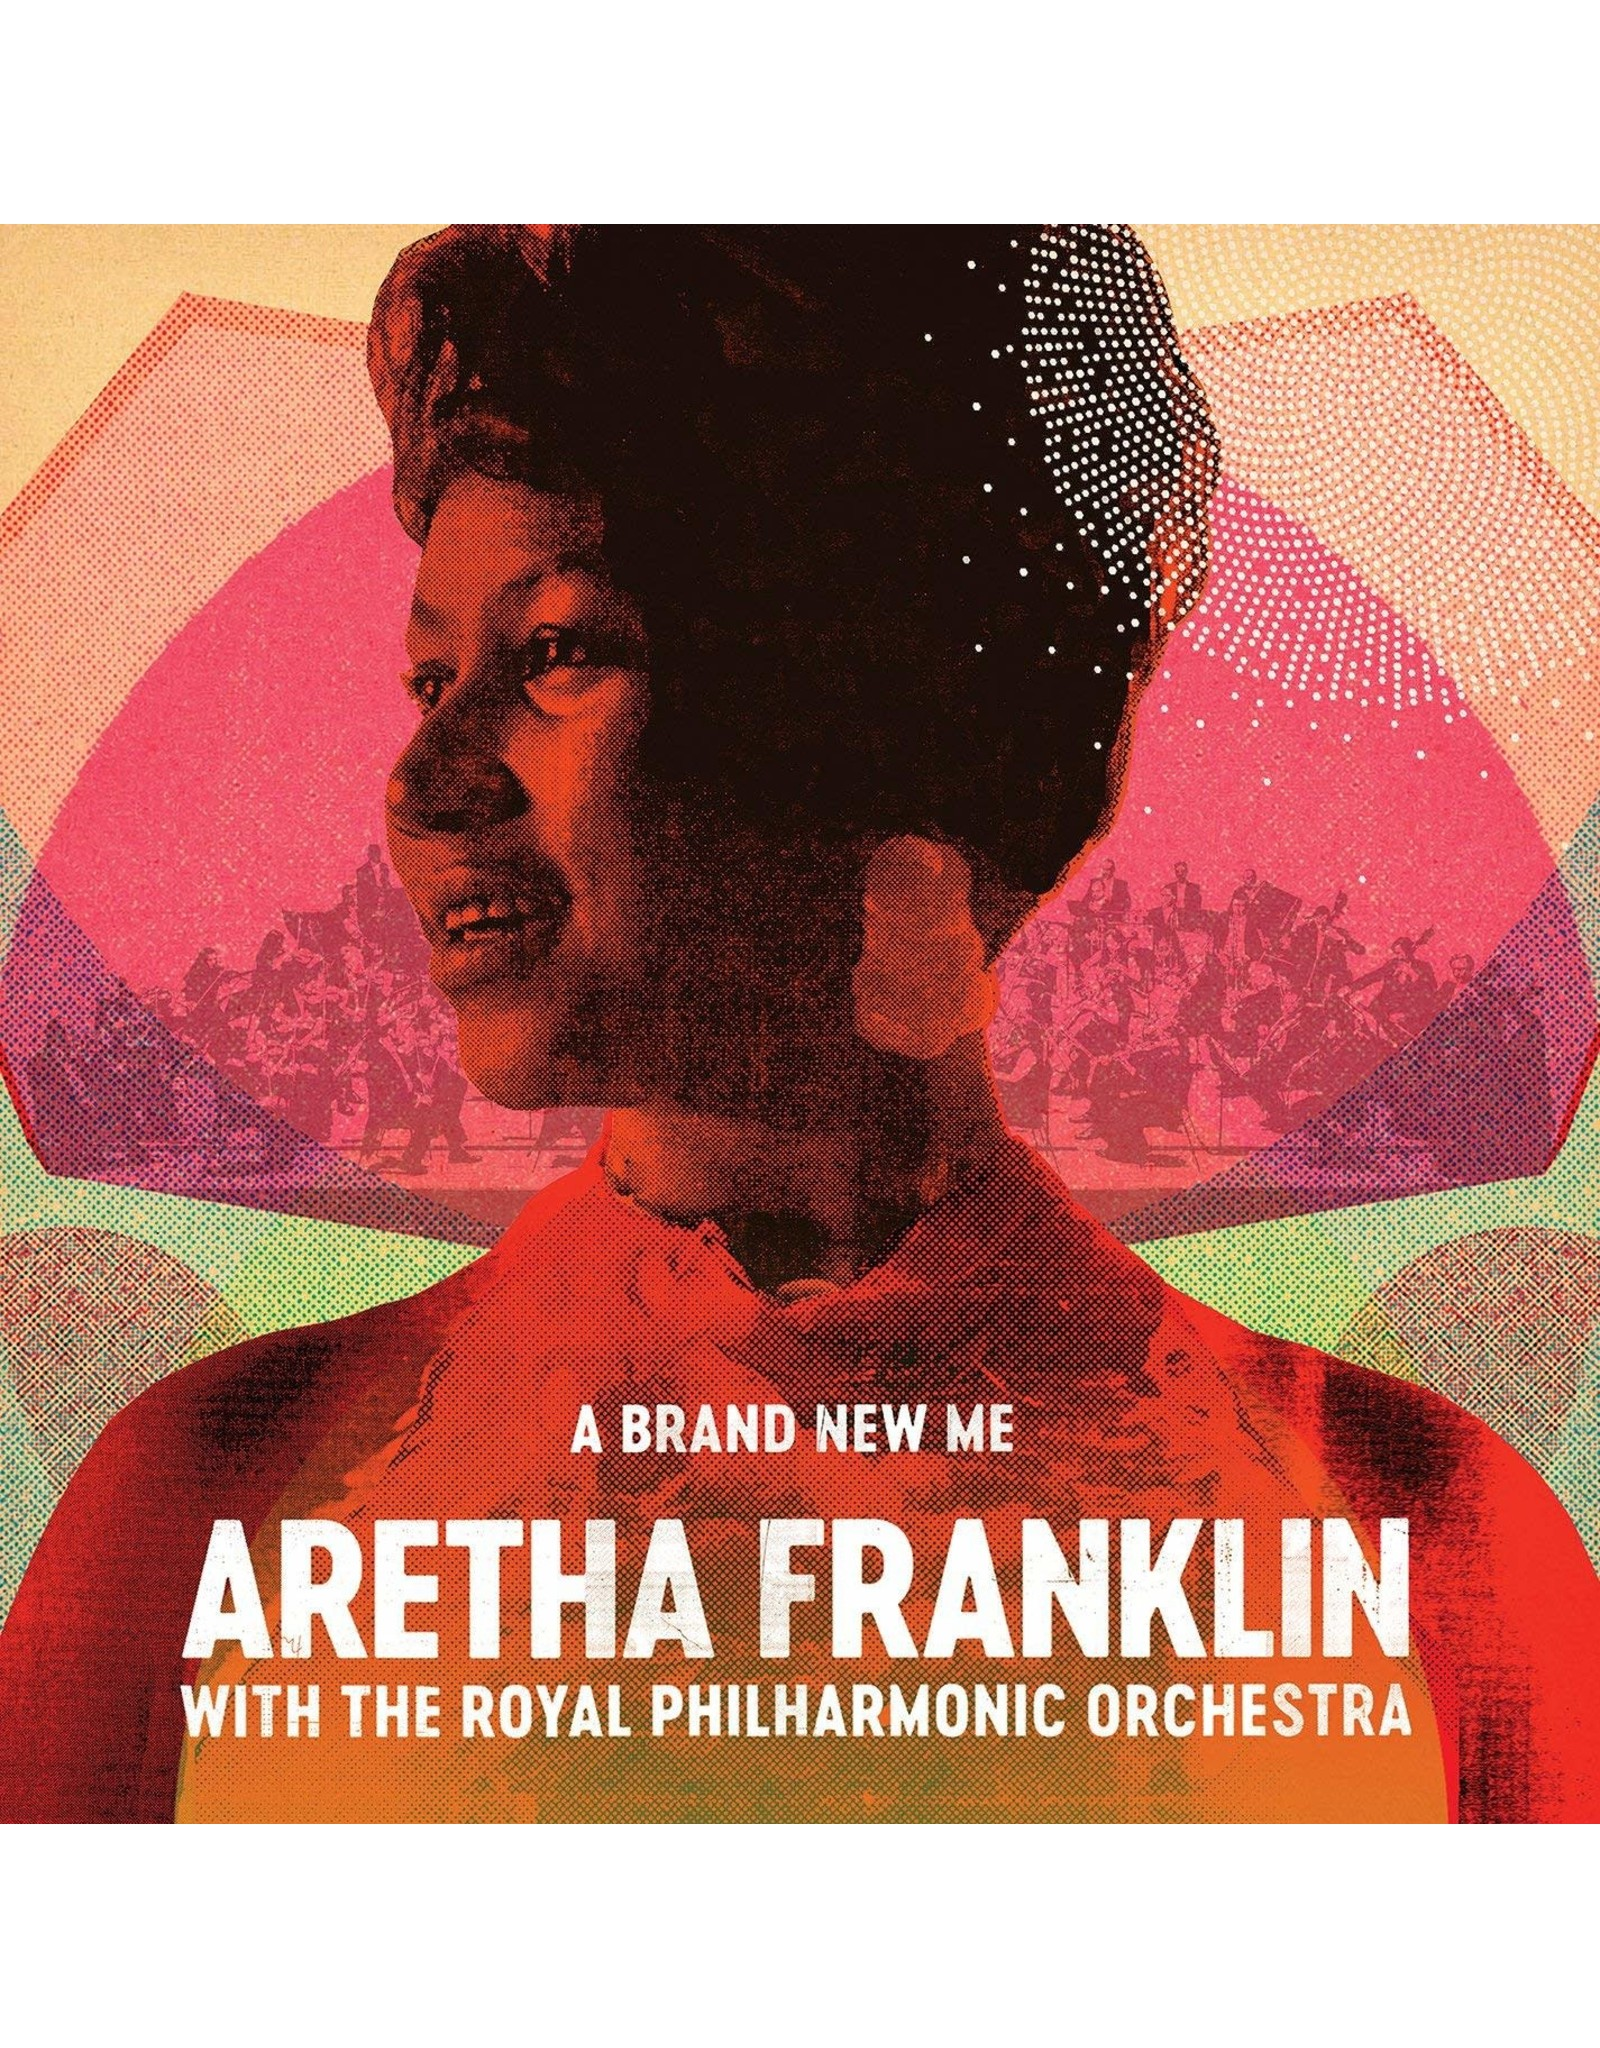 Aretha Franklin - Brand New Me (w/ Royal Philharmonic Orchestra)